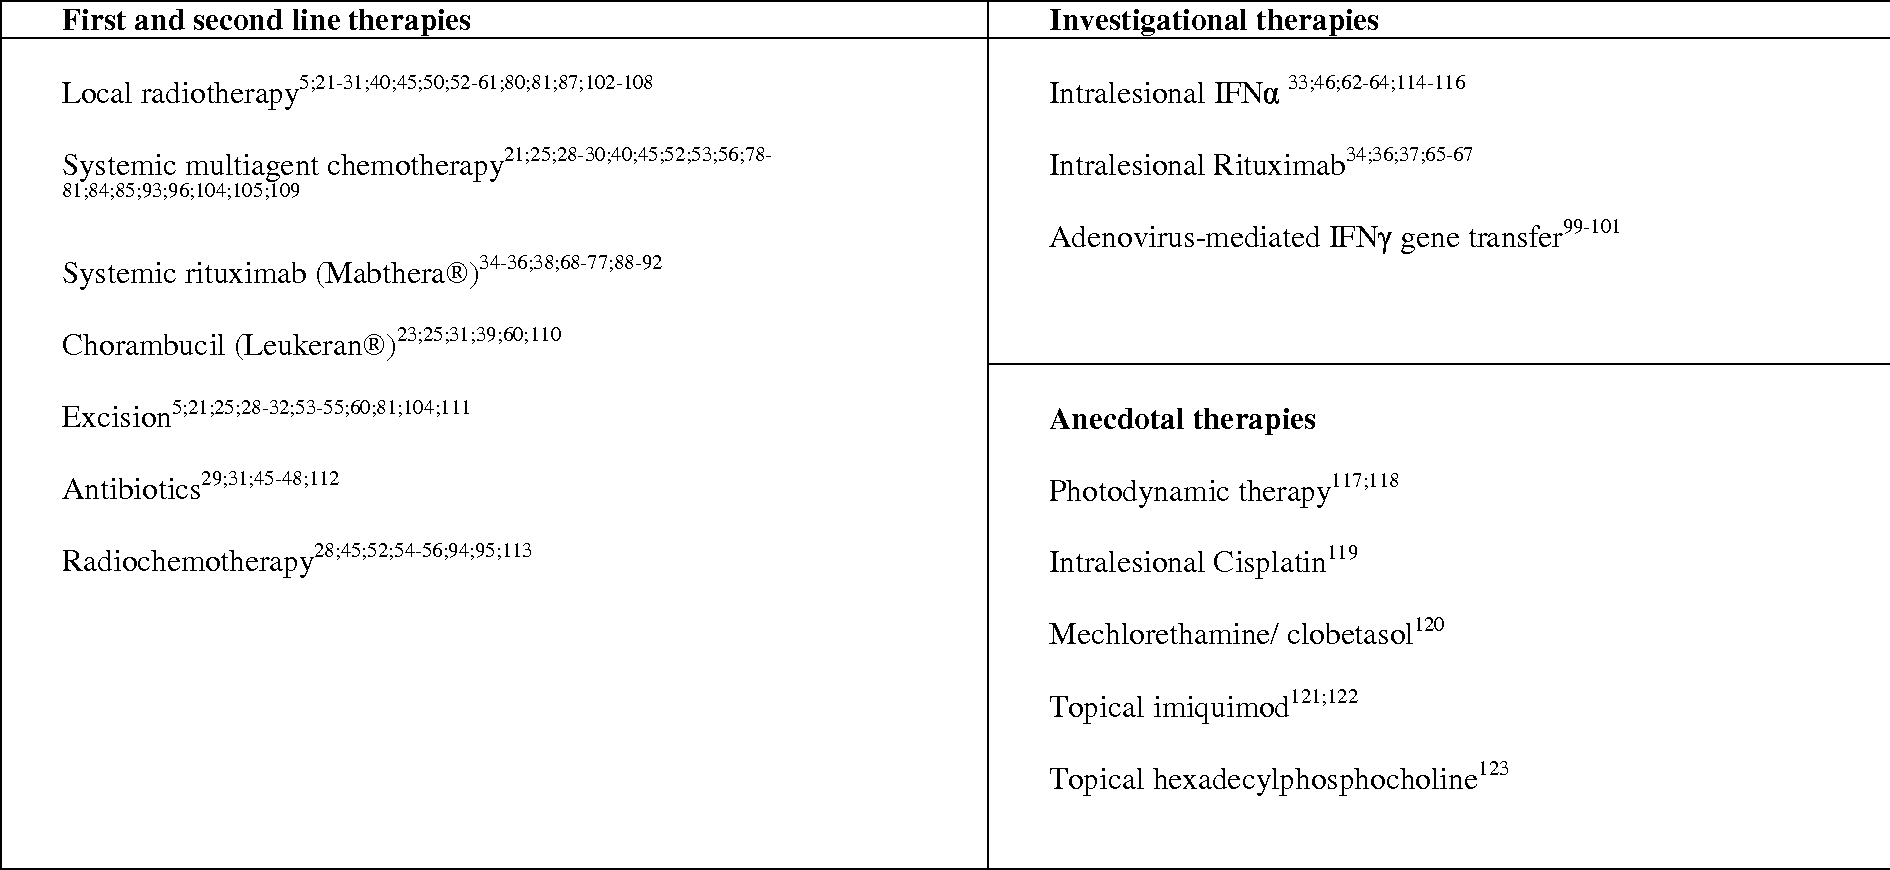 Table 2. Overview of reported therapies for primary cutaneous B-cell lymphomas.